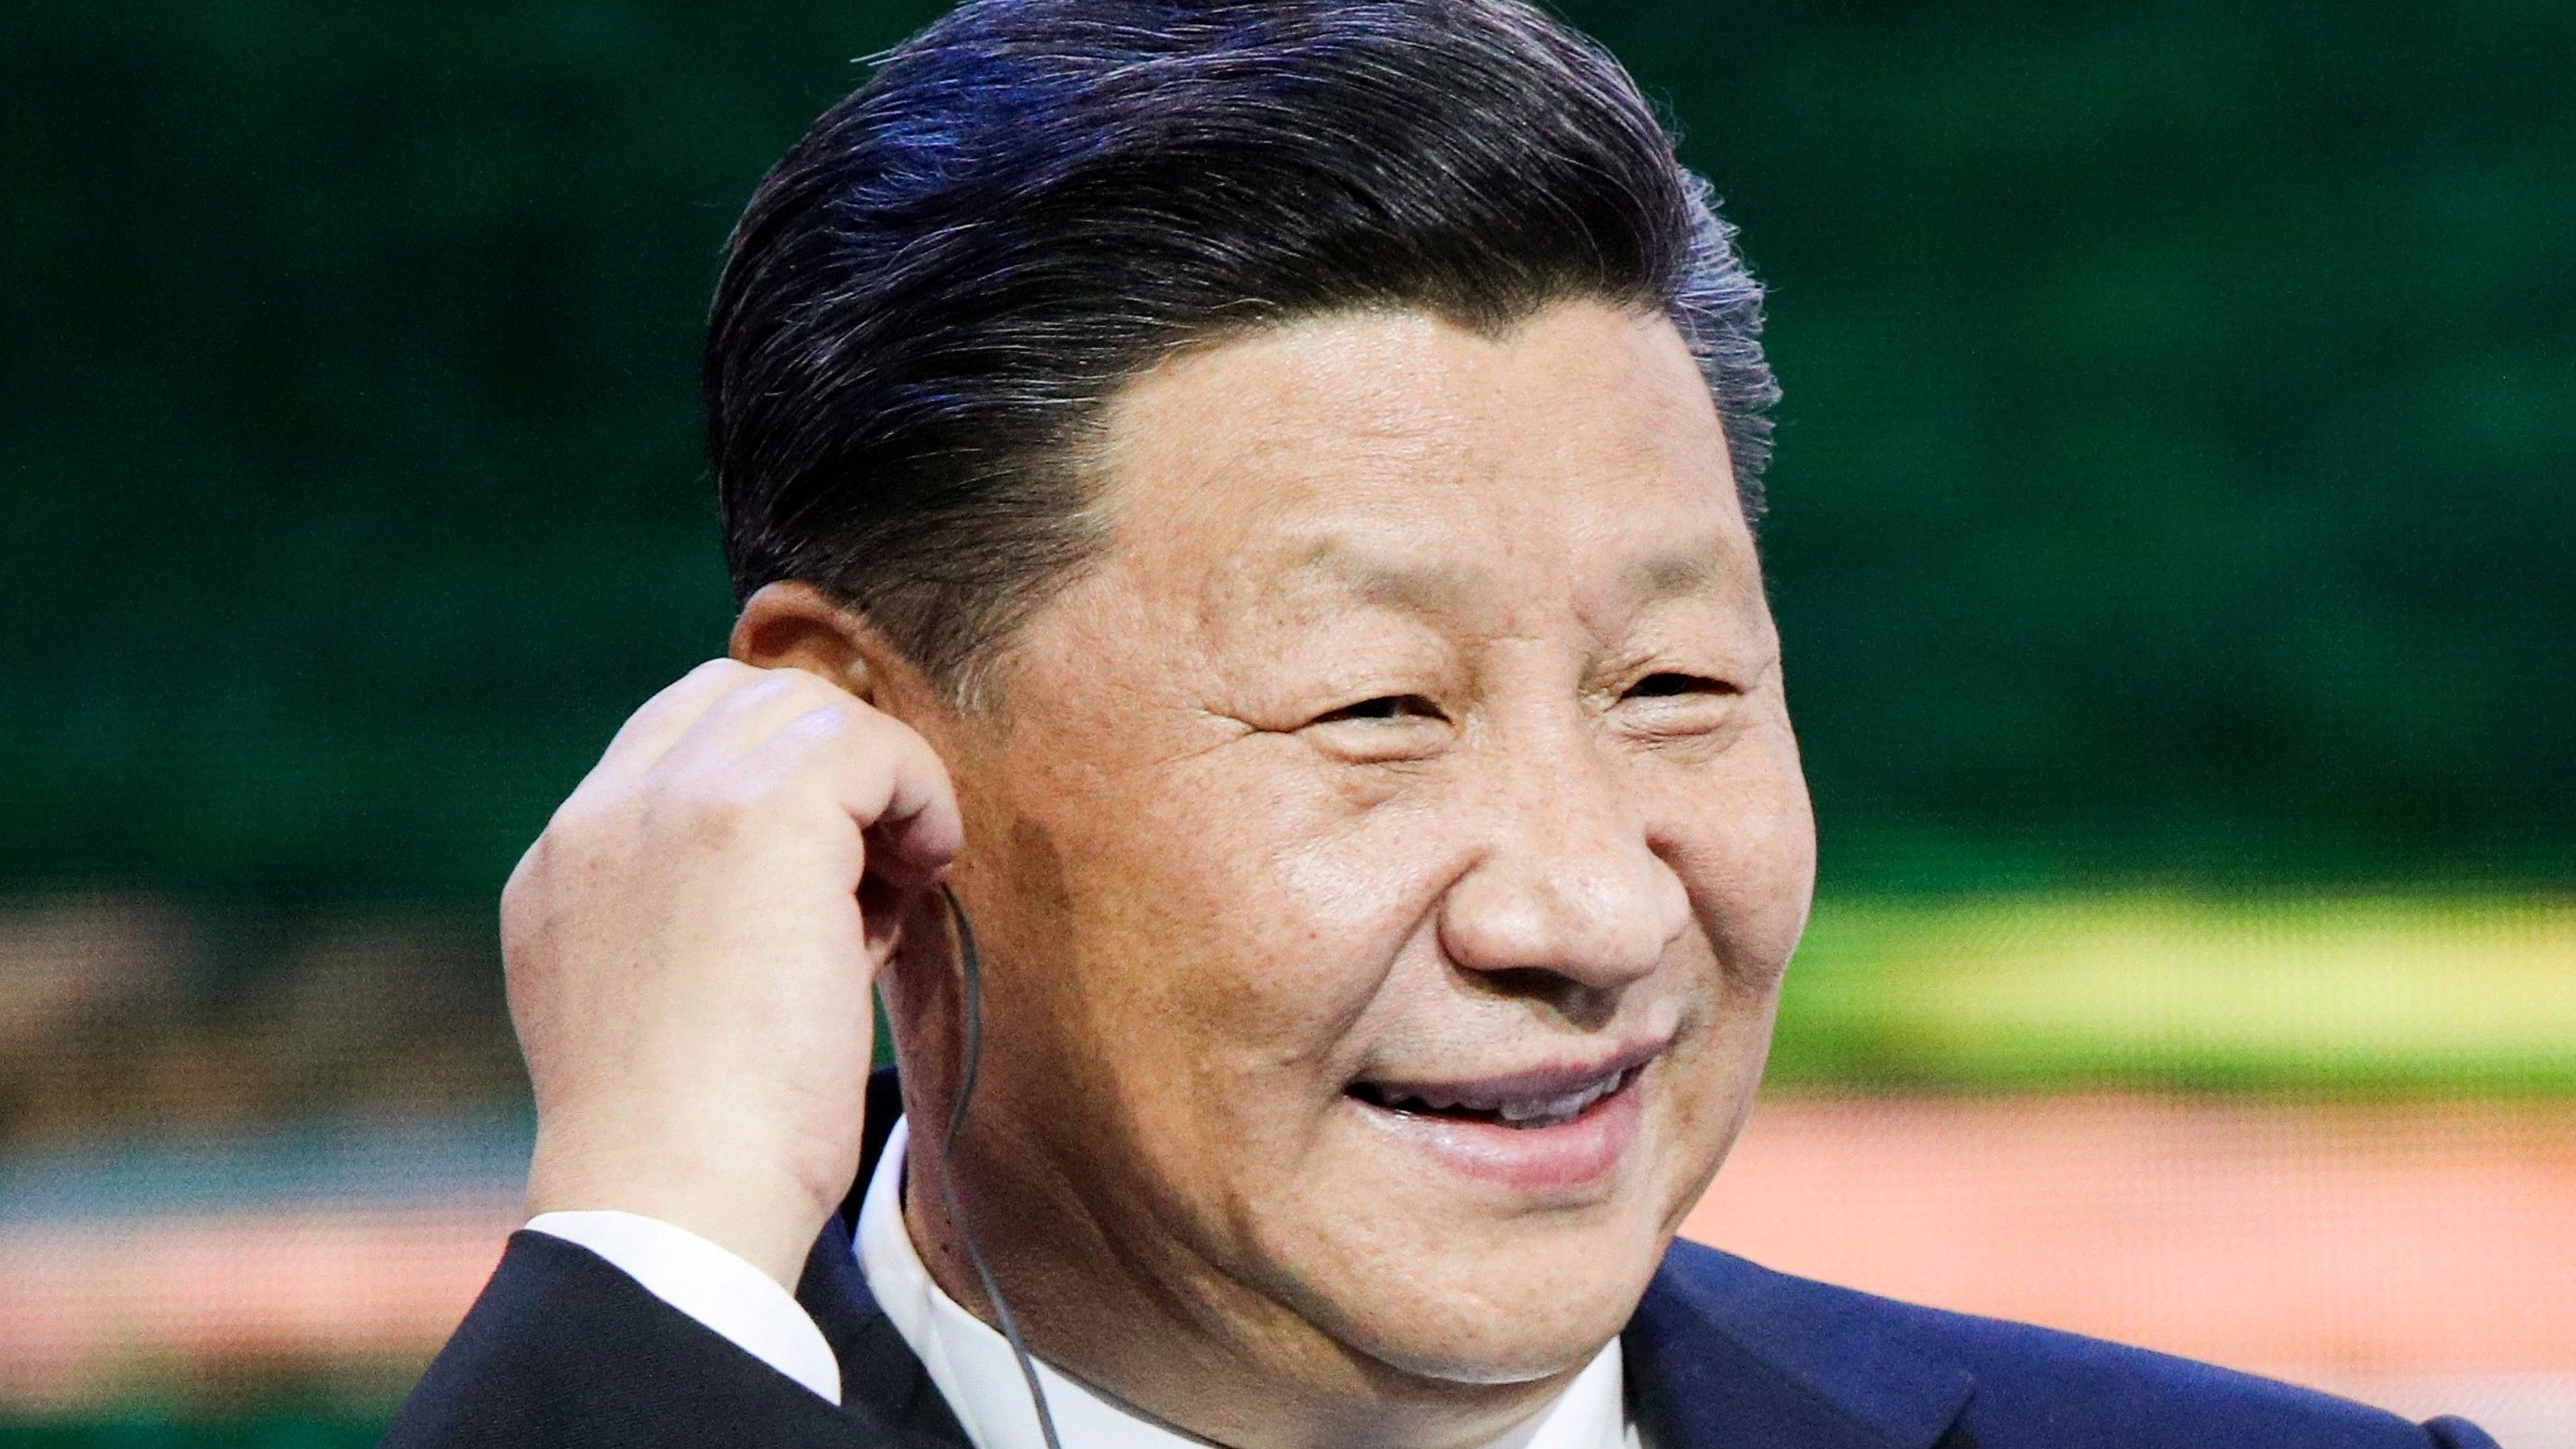 581649a9362 What is Xi Jinping Thought  A Chinese game show is promoting the ...